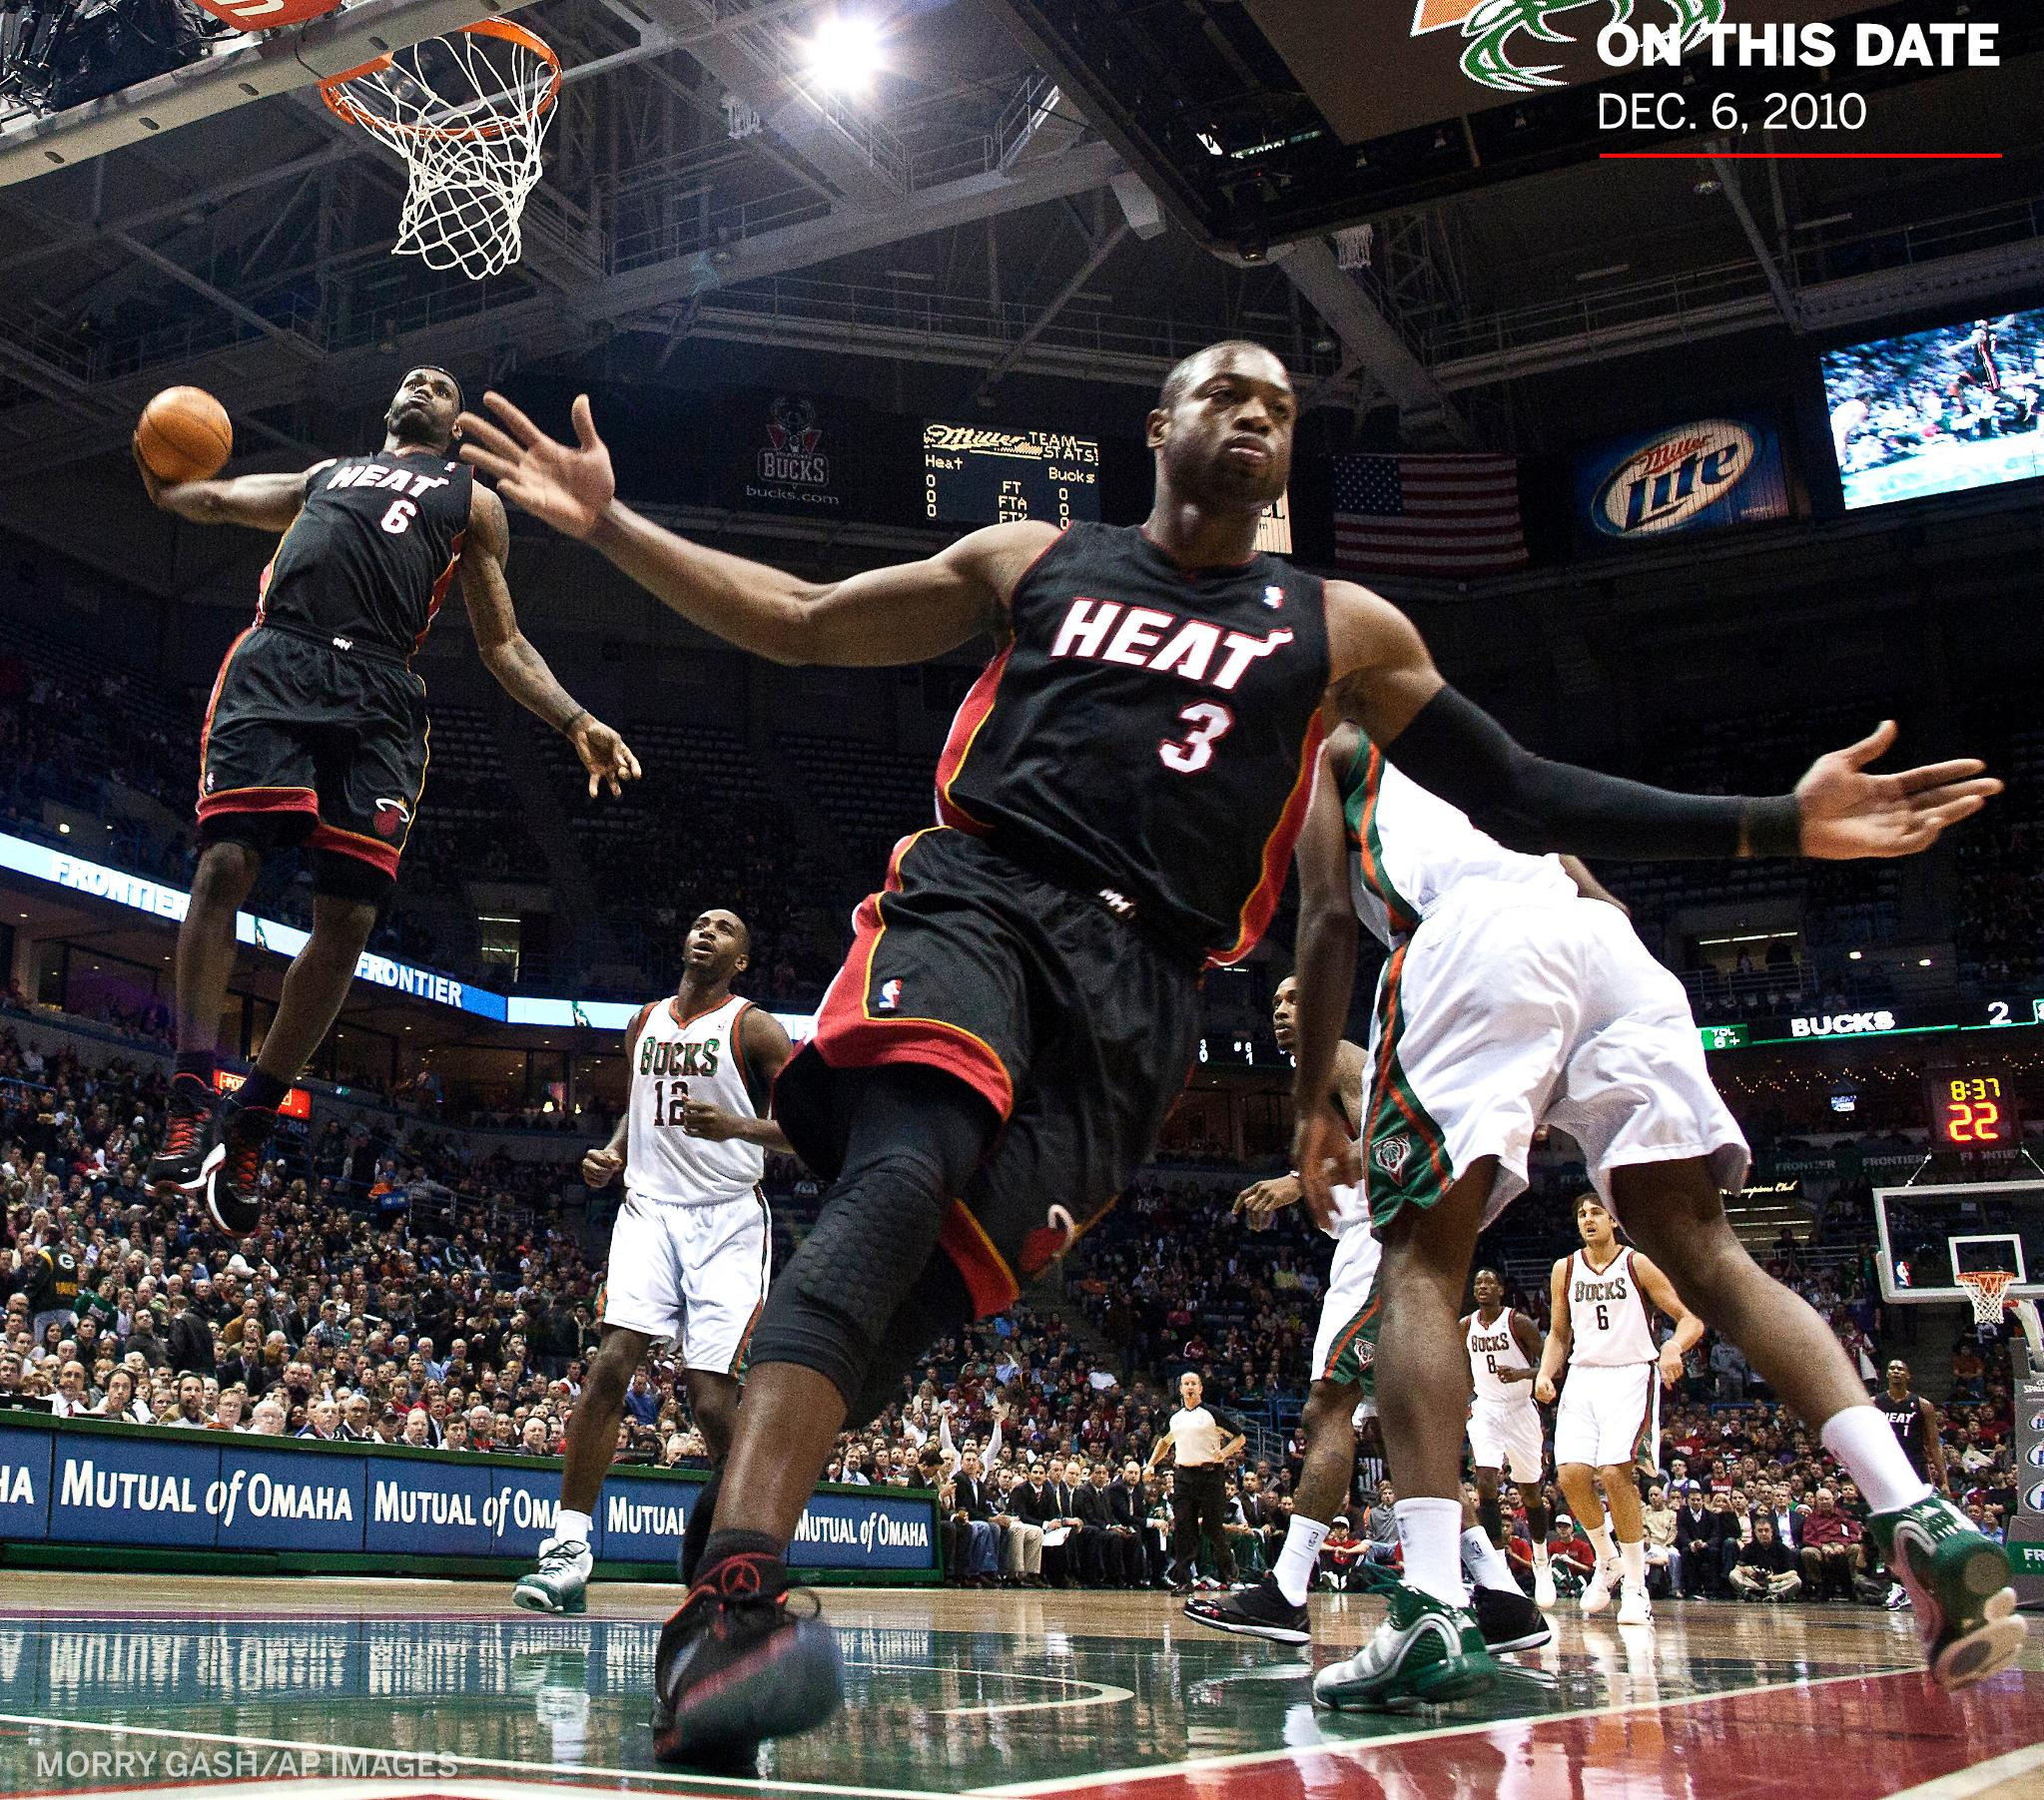 On This Date: 8 years ago today, @KingJames and @DwyaneWade made one of the greatest photos in NBA history �� https://t.co/iRg5TrW5SZ